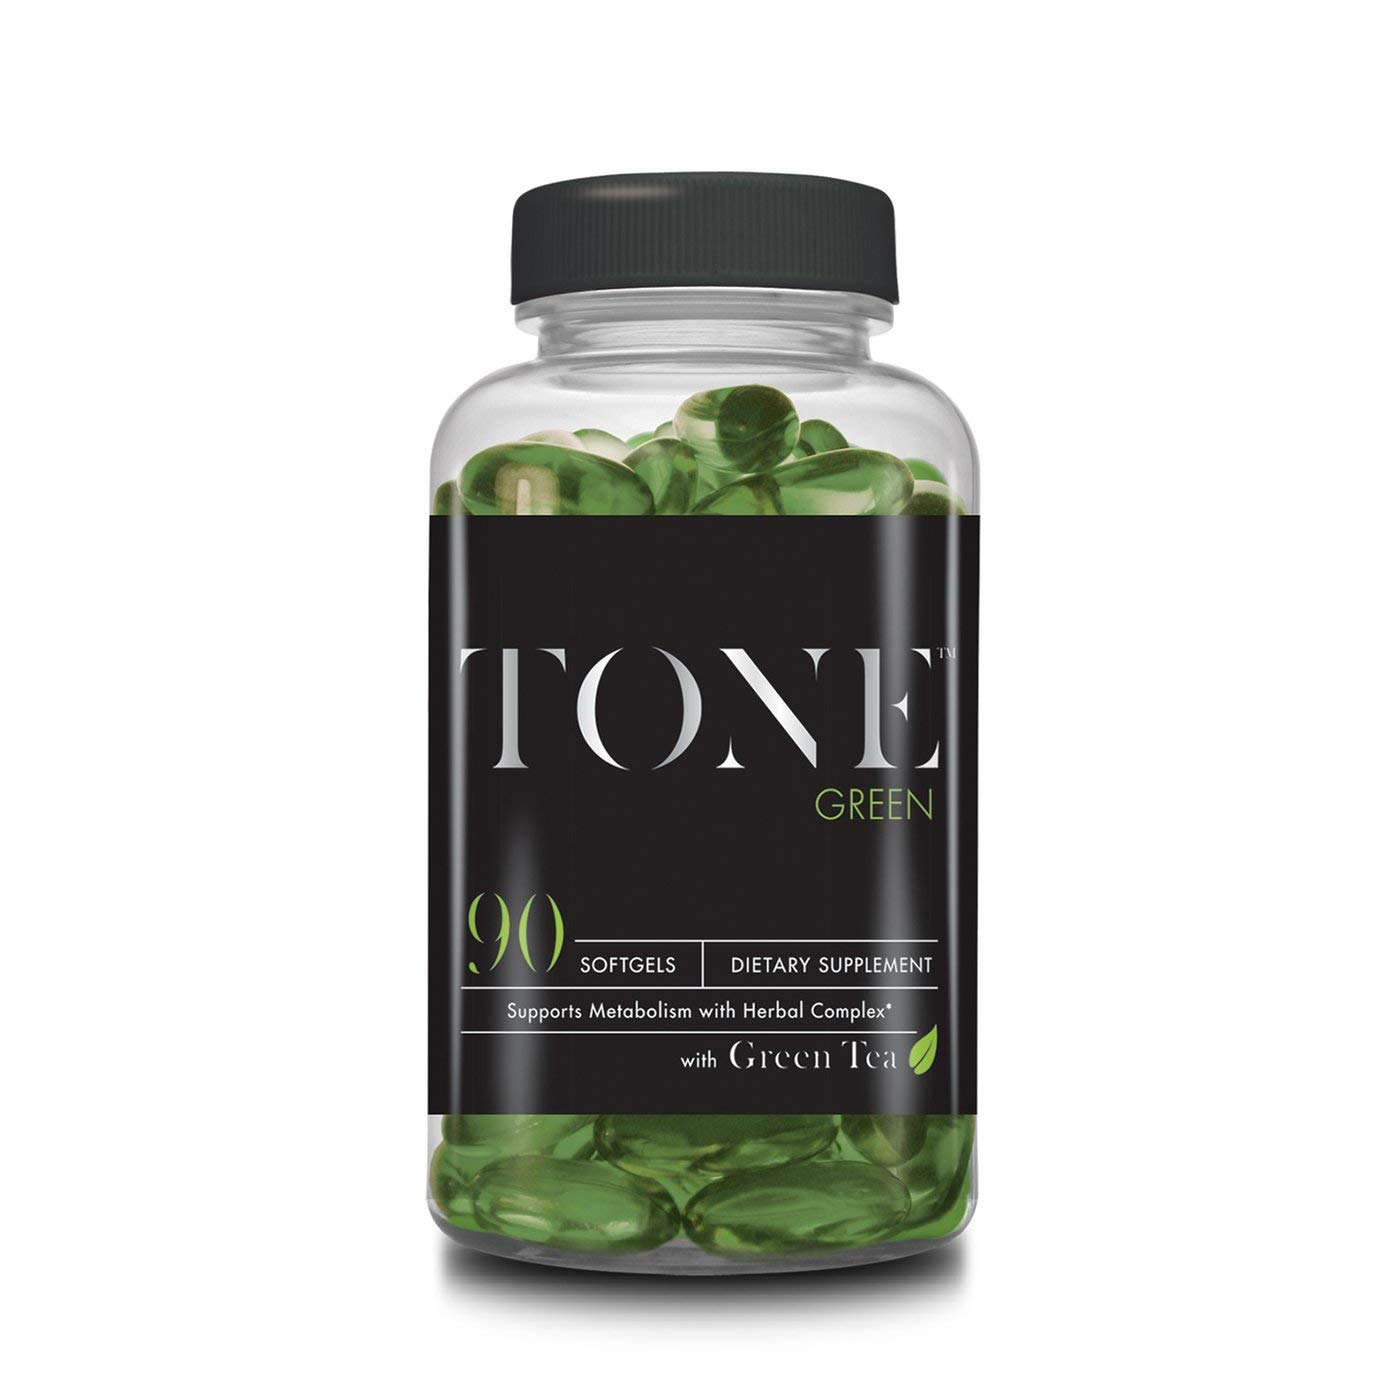 Complete Nutrition Tone Green* Supports Metabolism with Herbal Complex (90 Capsules) by Complete Nutrition